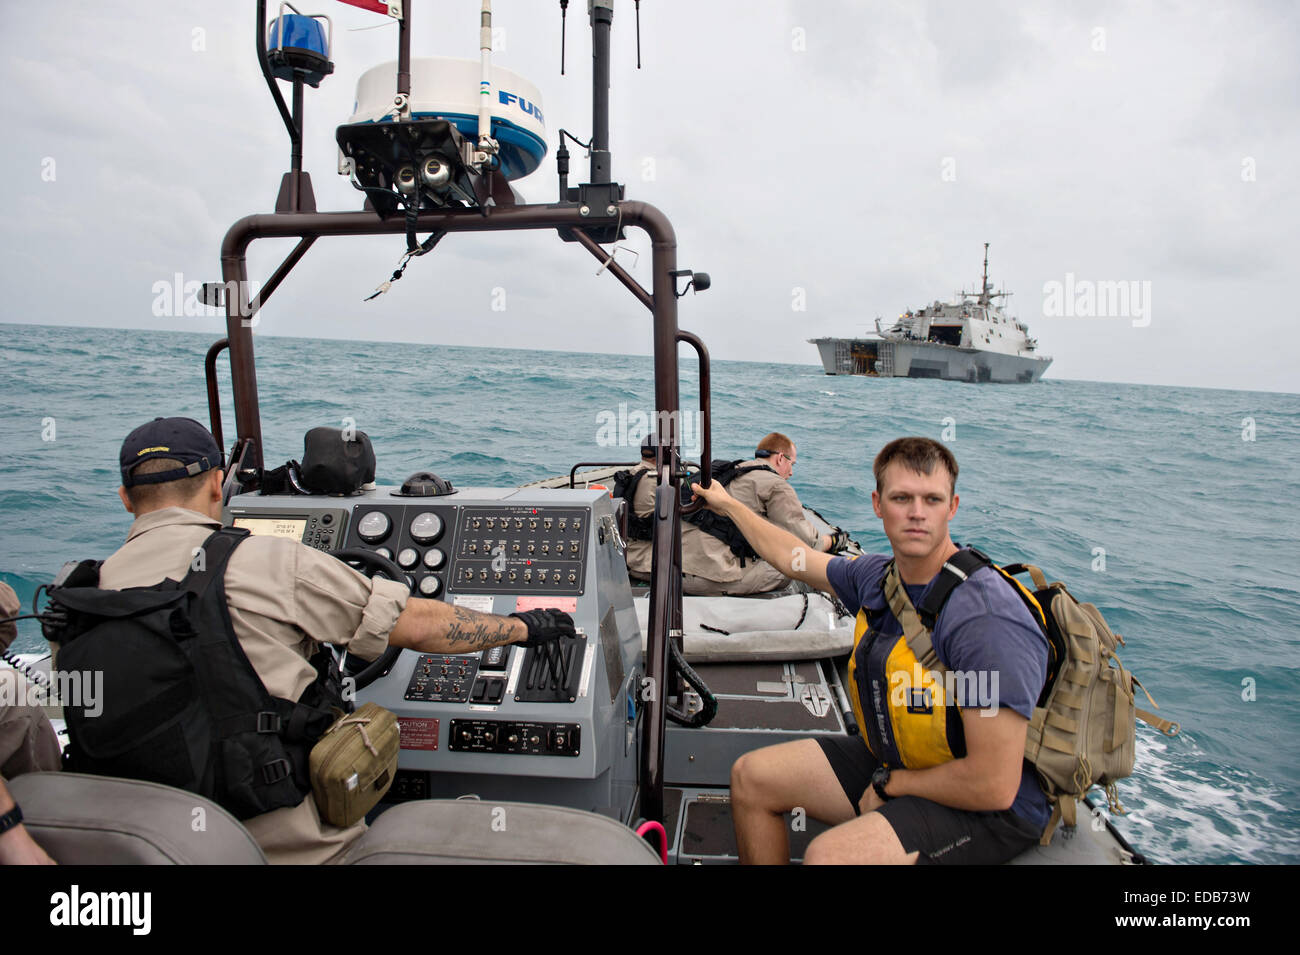 US Navy sailors from the littoral combat ship USS Fort Worth prepare to launch a Tow Fish side scan sonar system - Stock Image